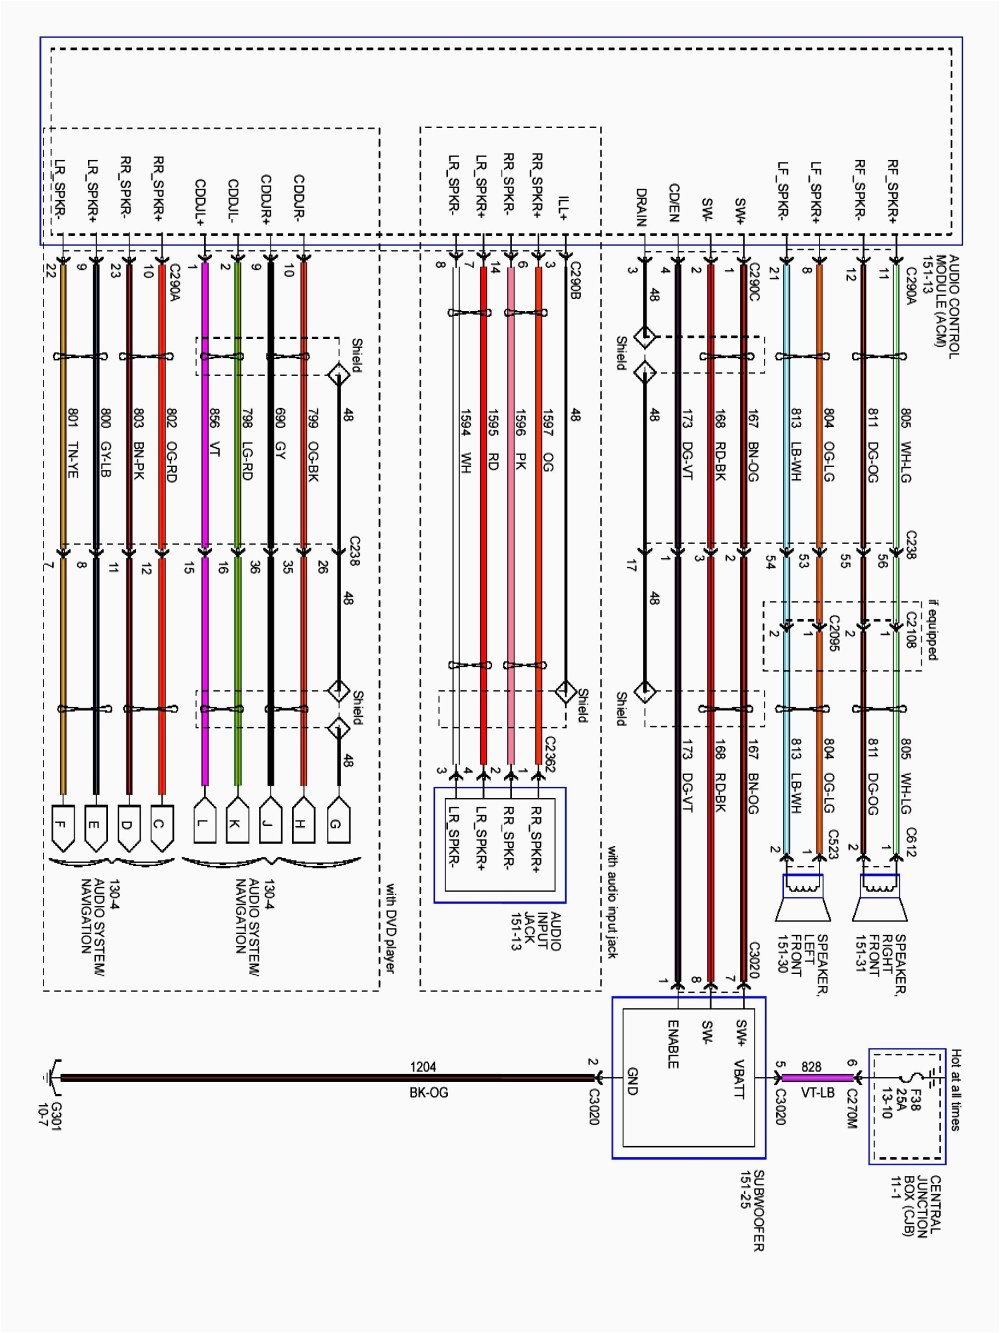 medium resolution of 2003 f250 trailer wiring harness wiring diagram used 2003 f250 trailer wiring harness